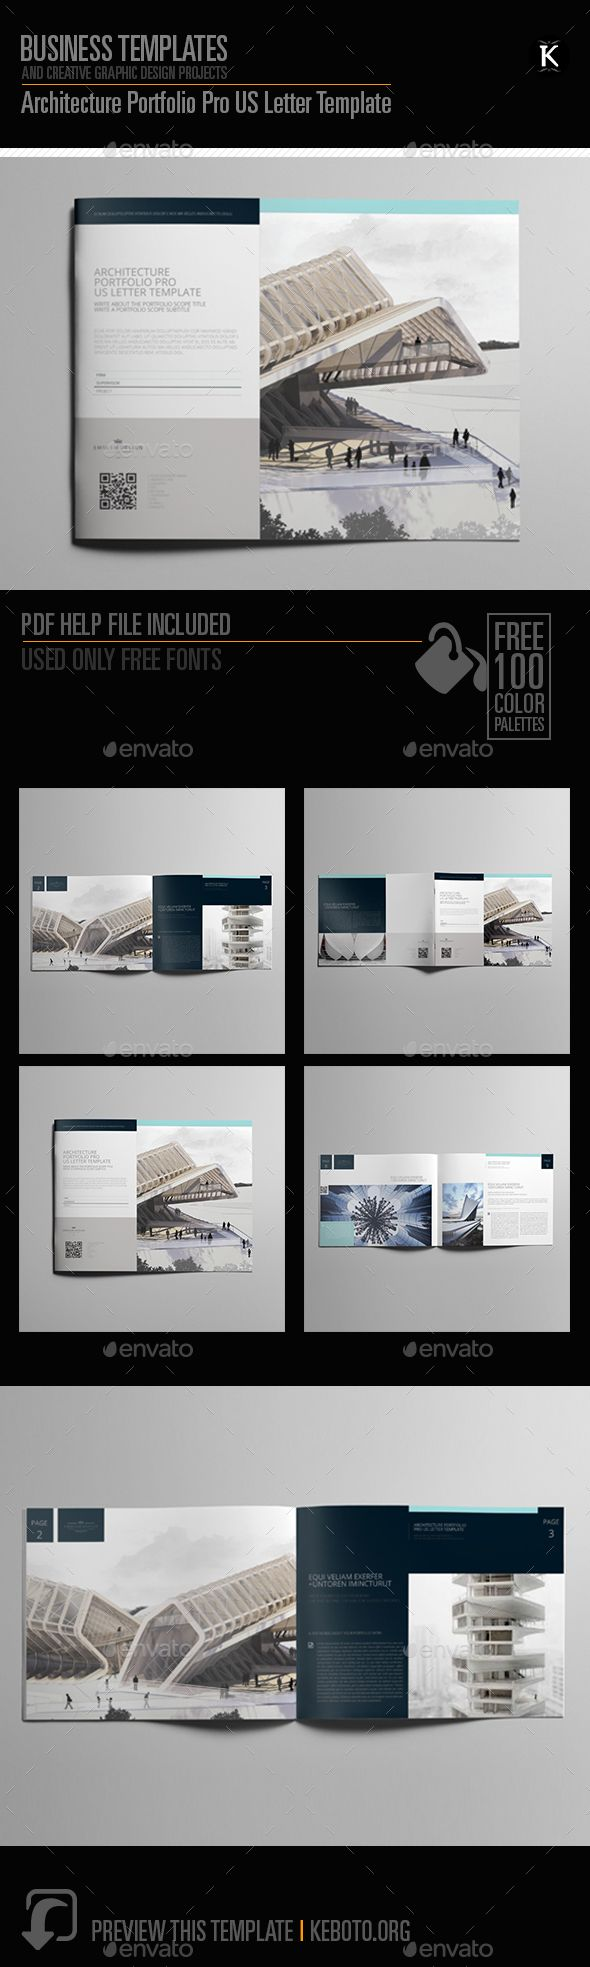 Best 25+ Architecture portfolio layout ideas only on ... Architecture Portfolio Layout Indesign